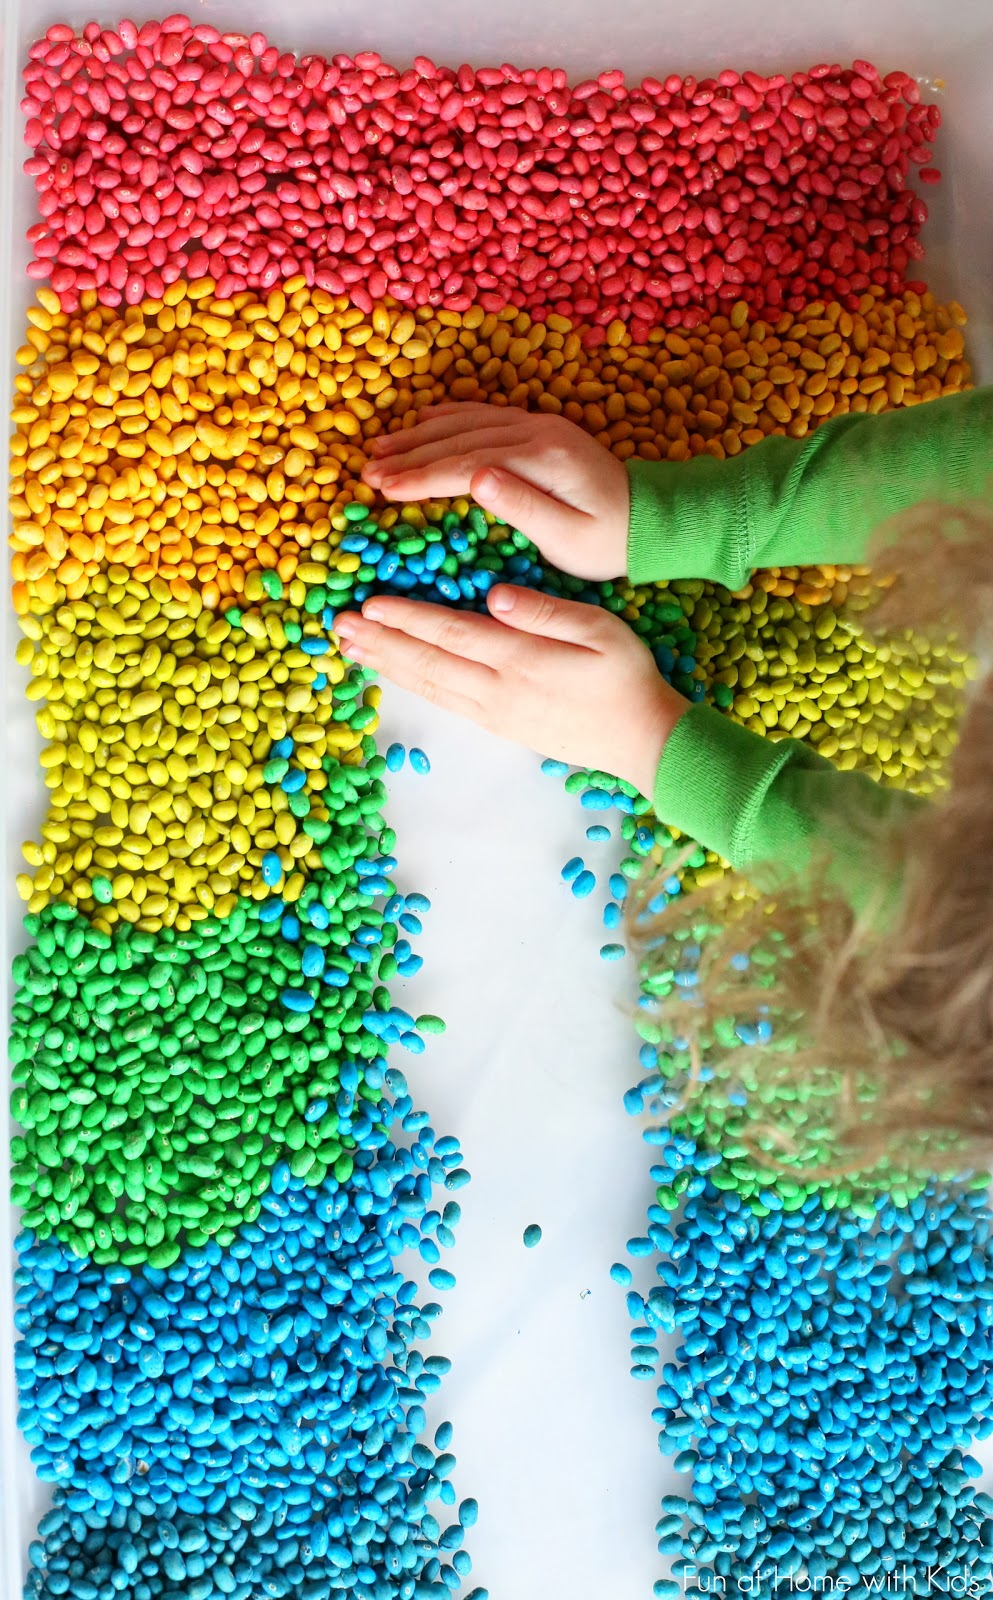 how to color beans for play and art